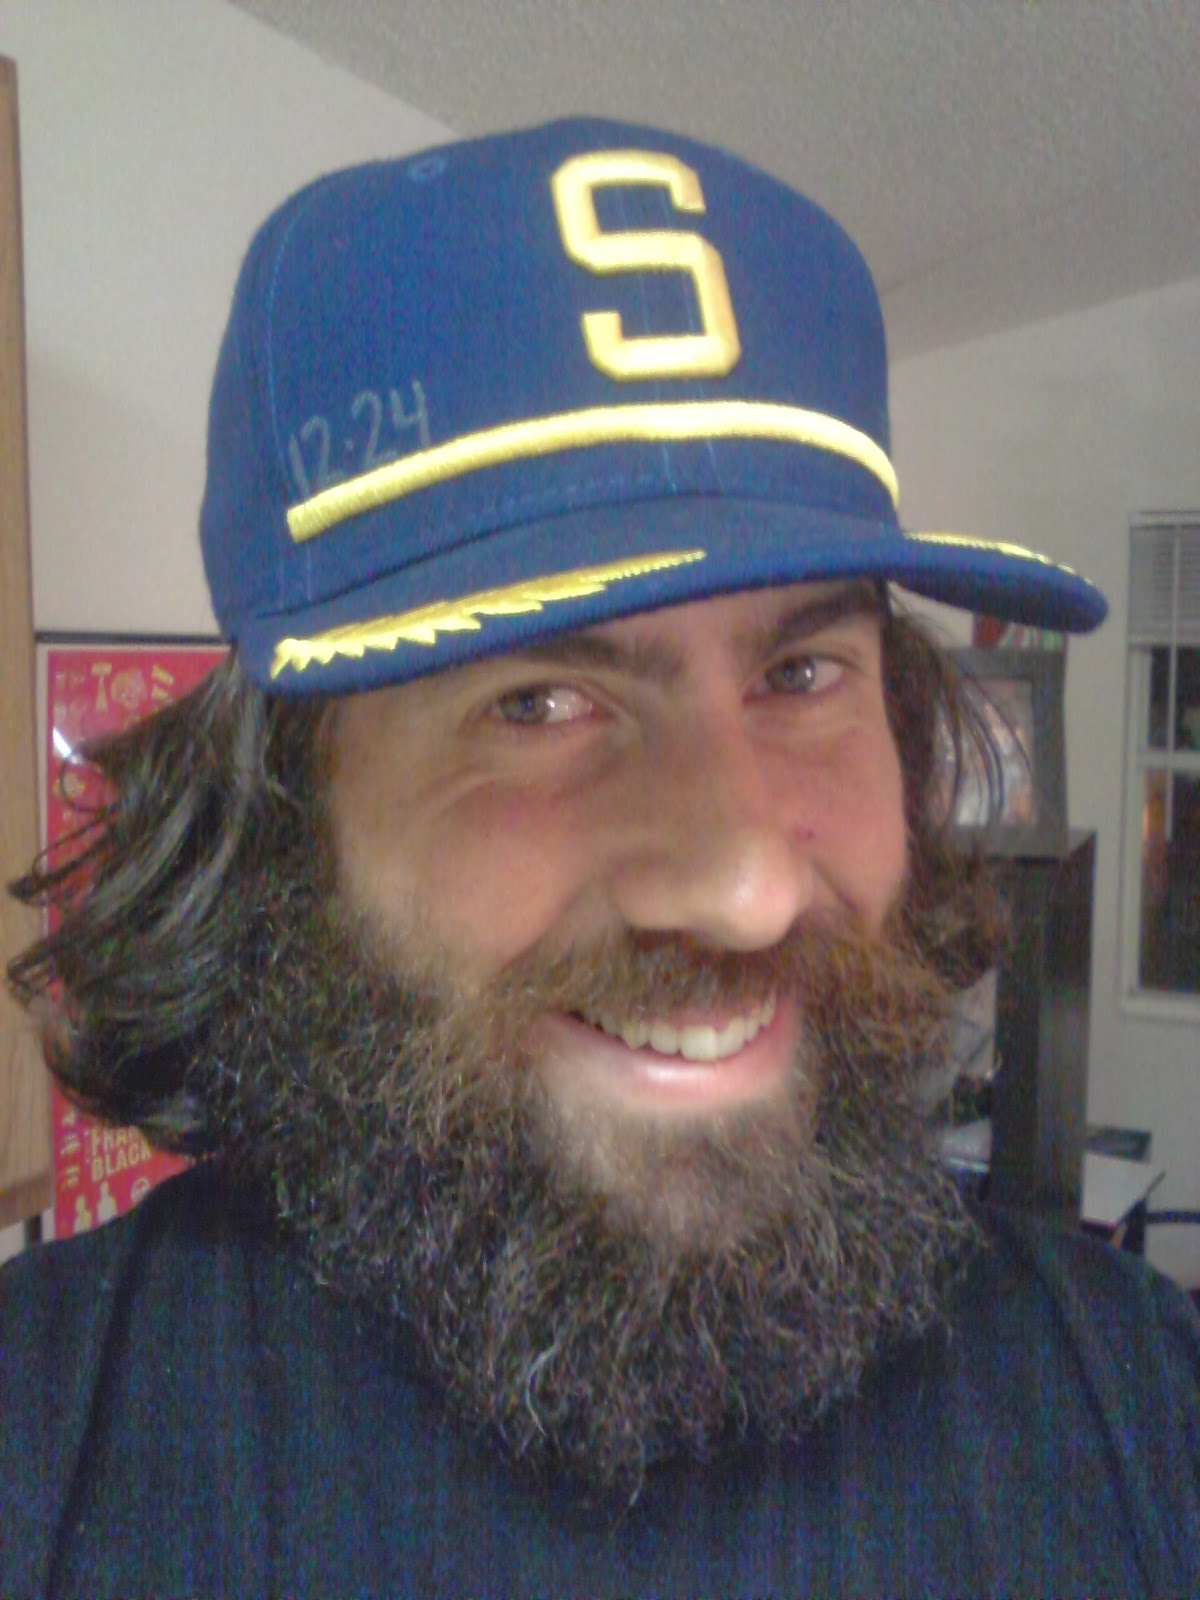 hats and tats a lifestyle august 9 seattle pilots